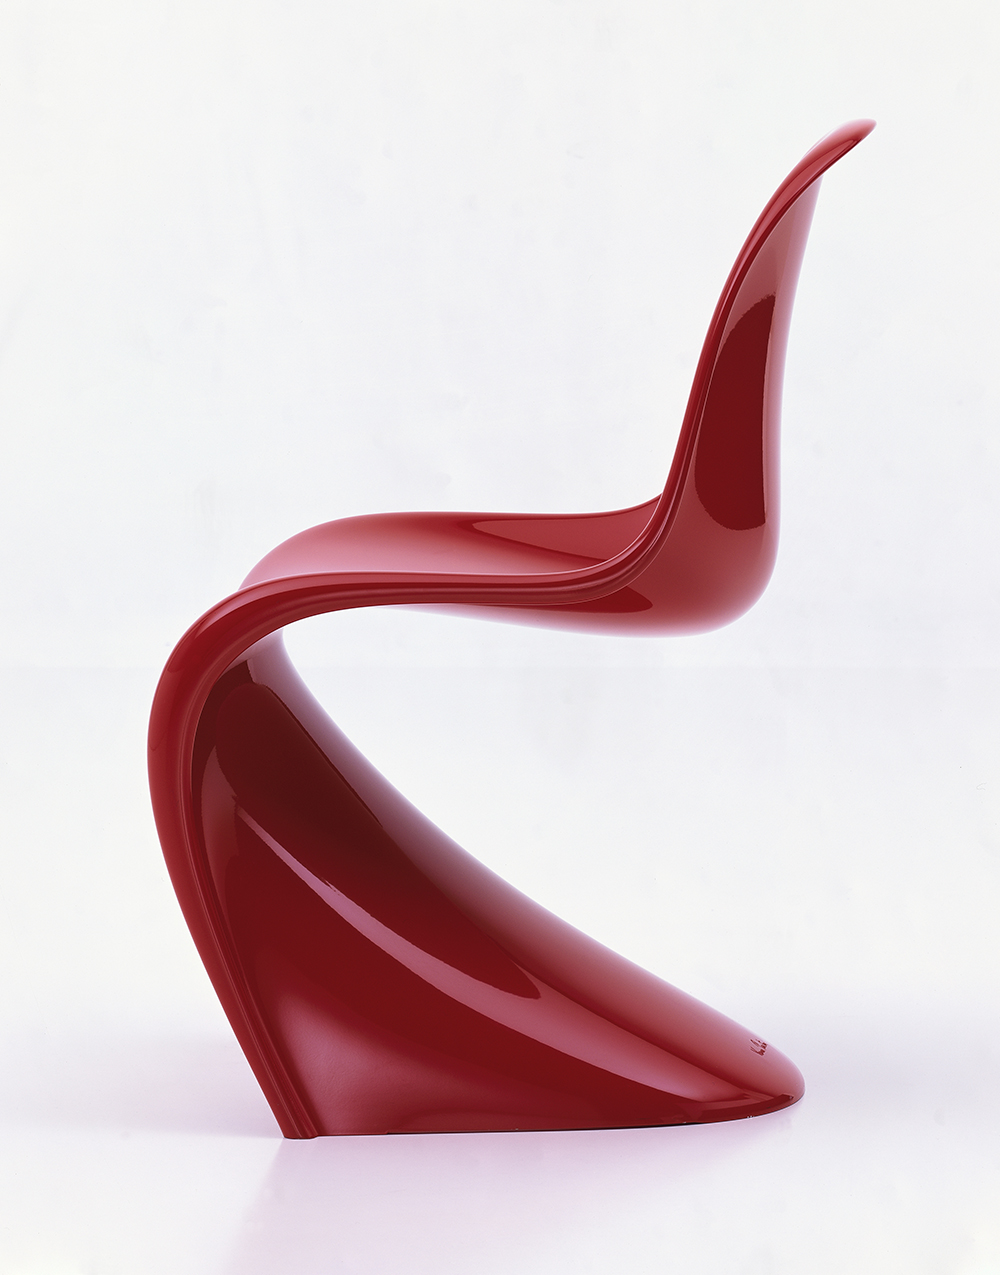 3 Panton Chair Classic_91257_master